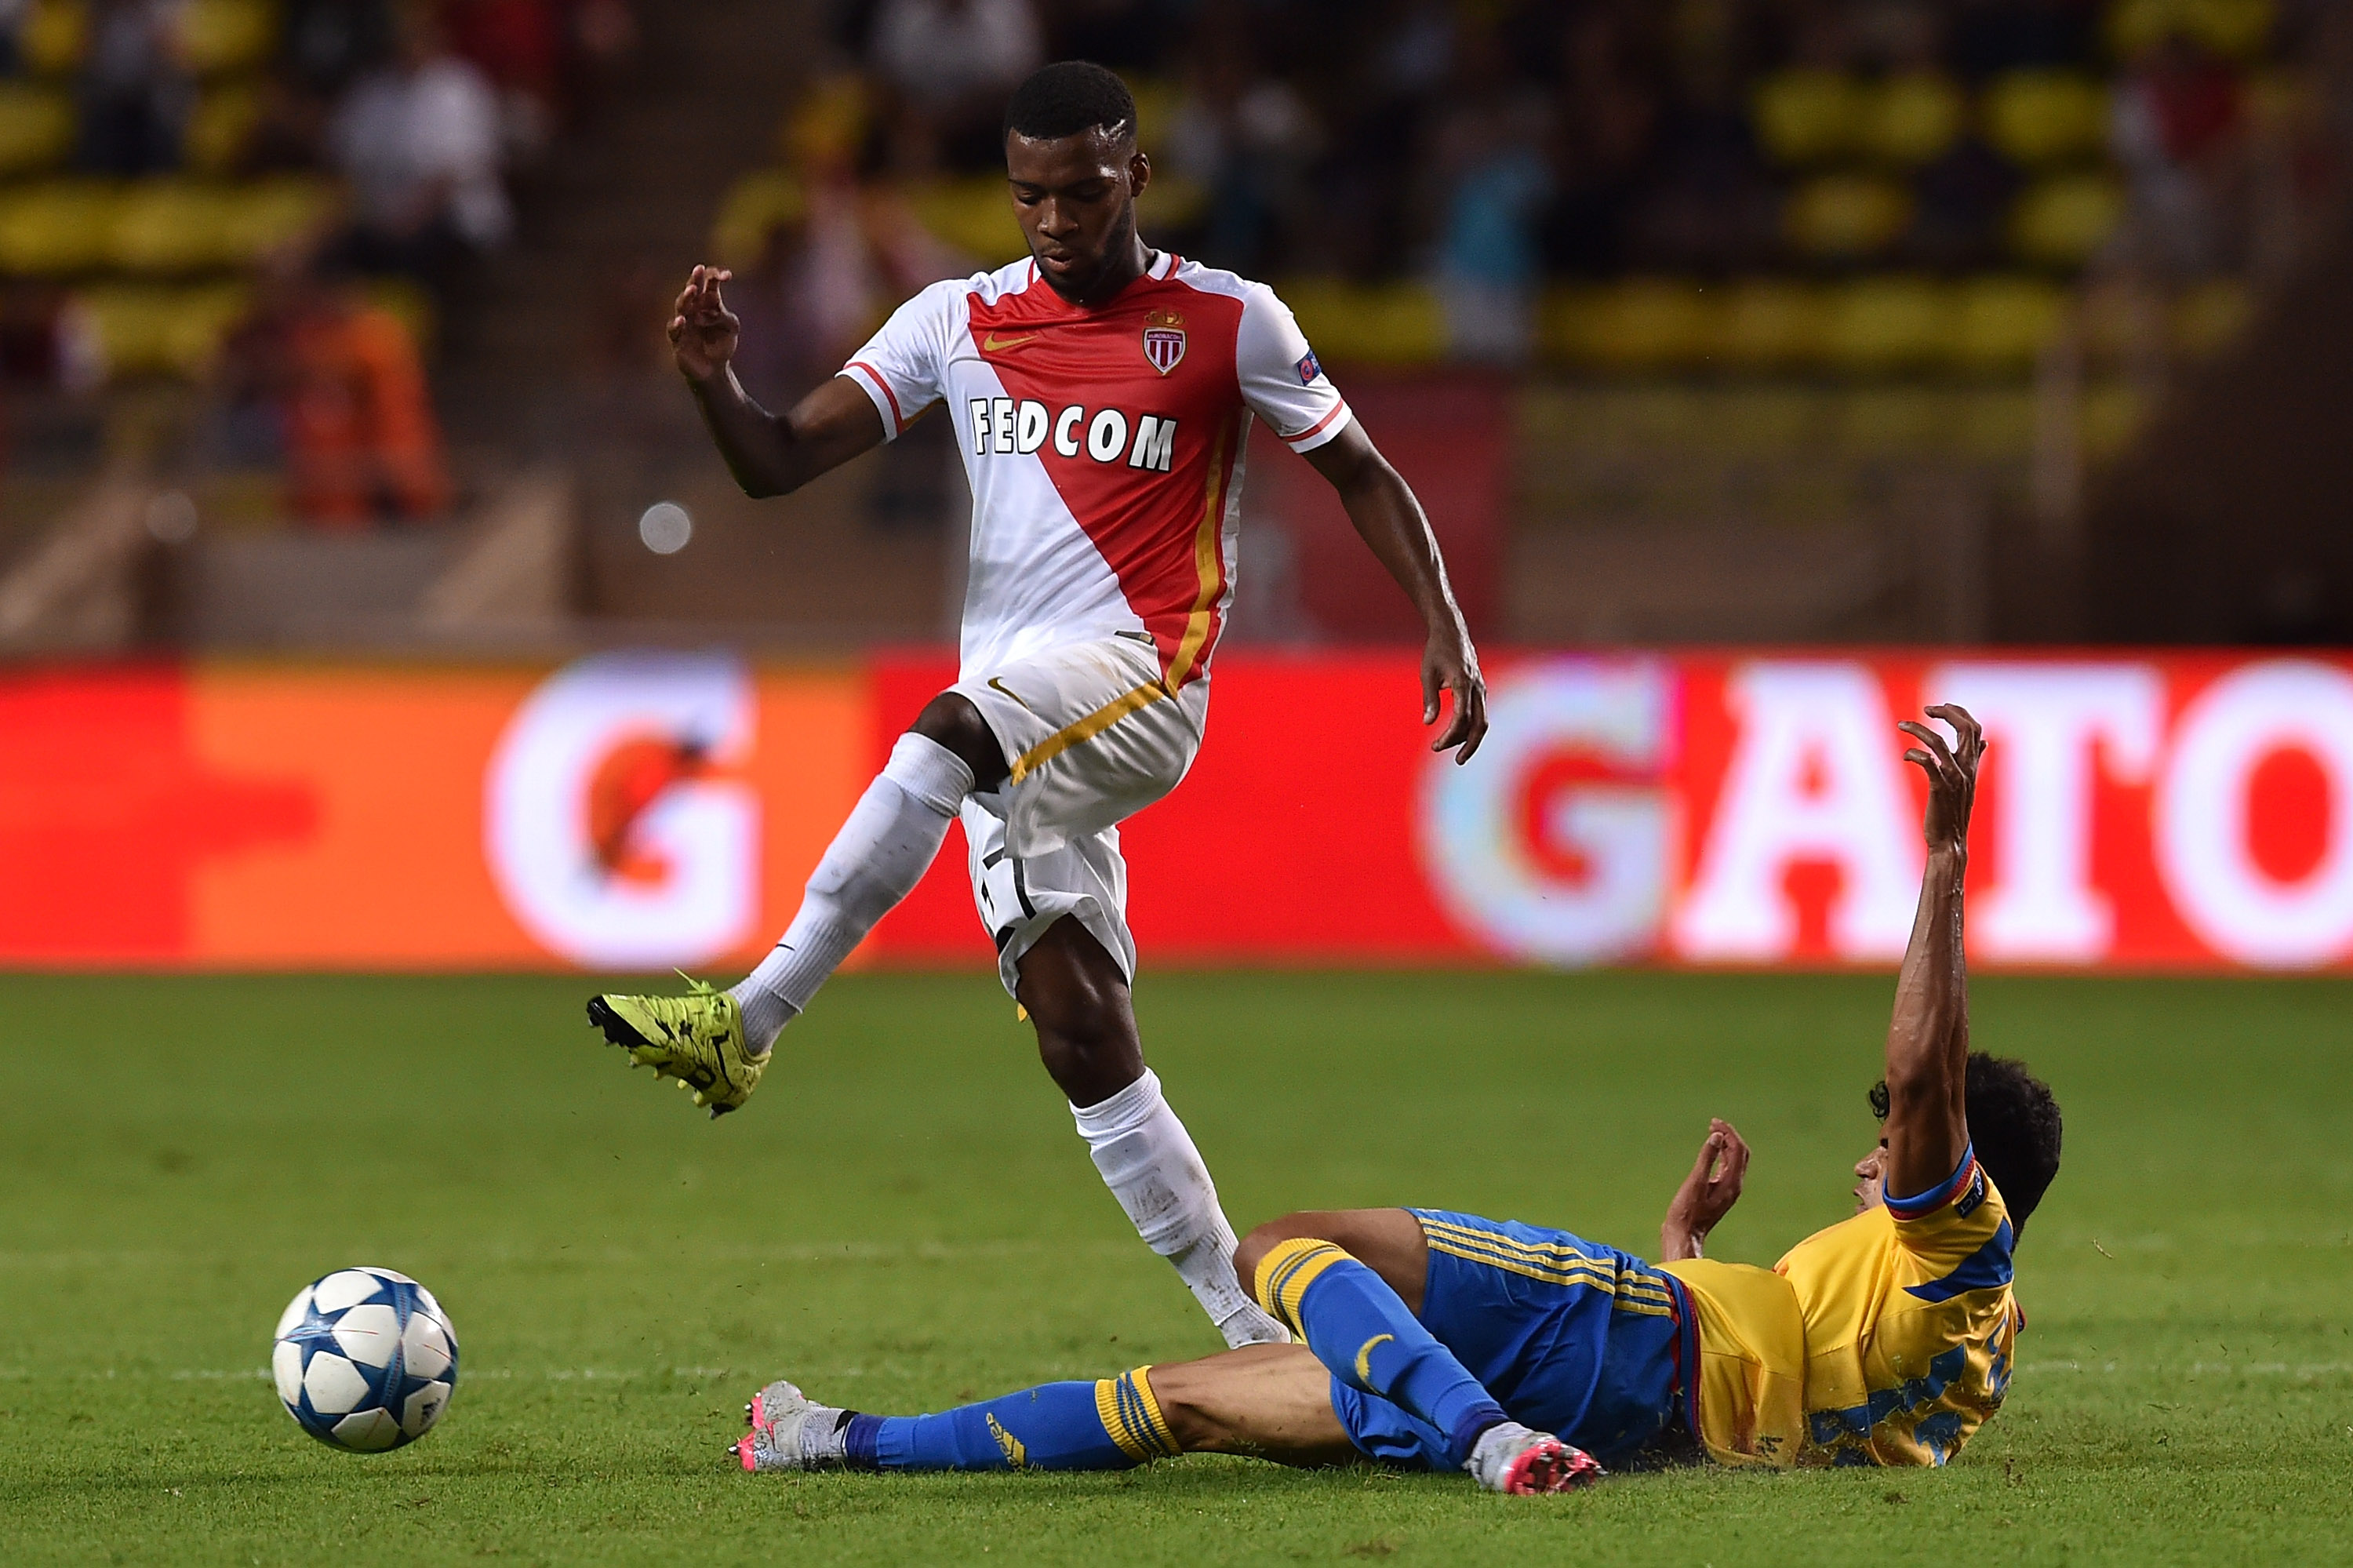 486204376-monaco-v-valencia-uefa-champions-league-qualifying-round-play-off-second-leg.jpg